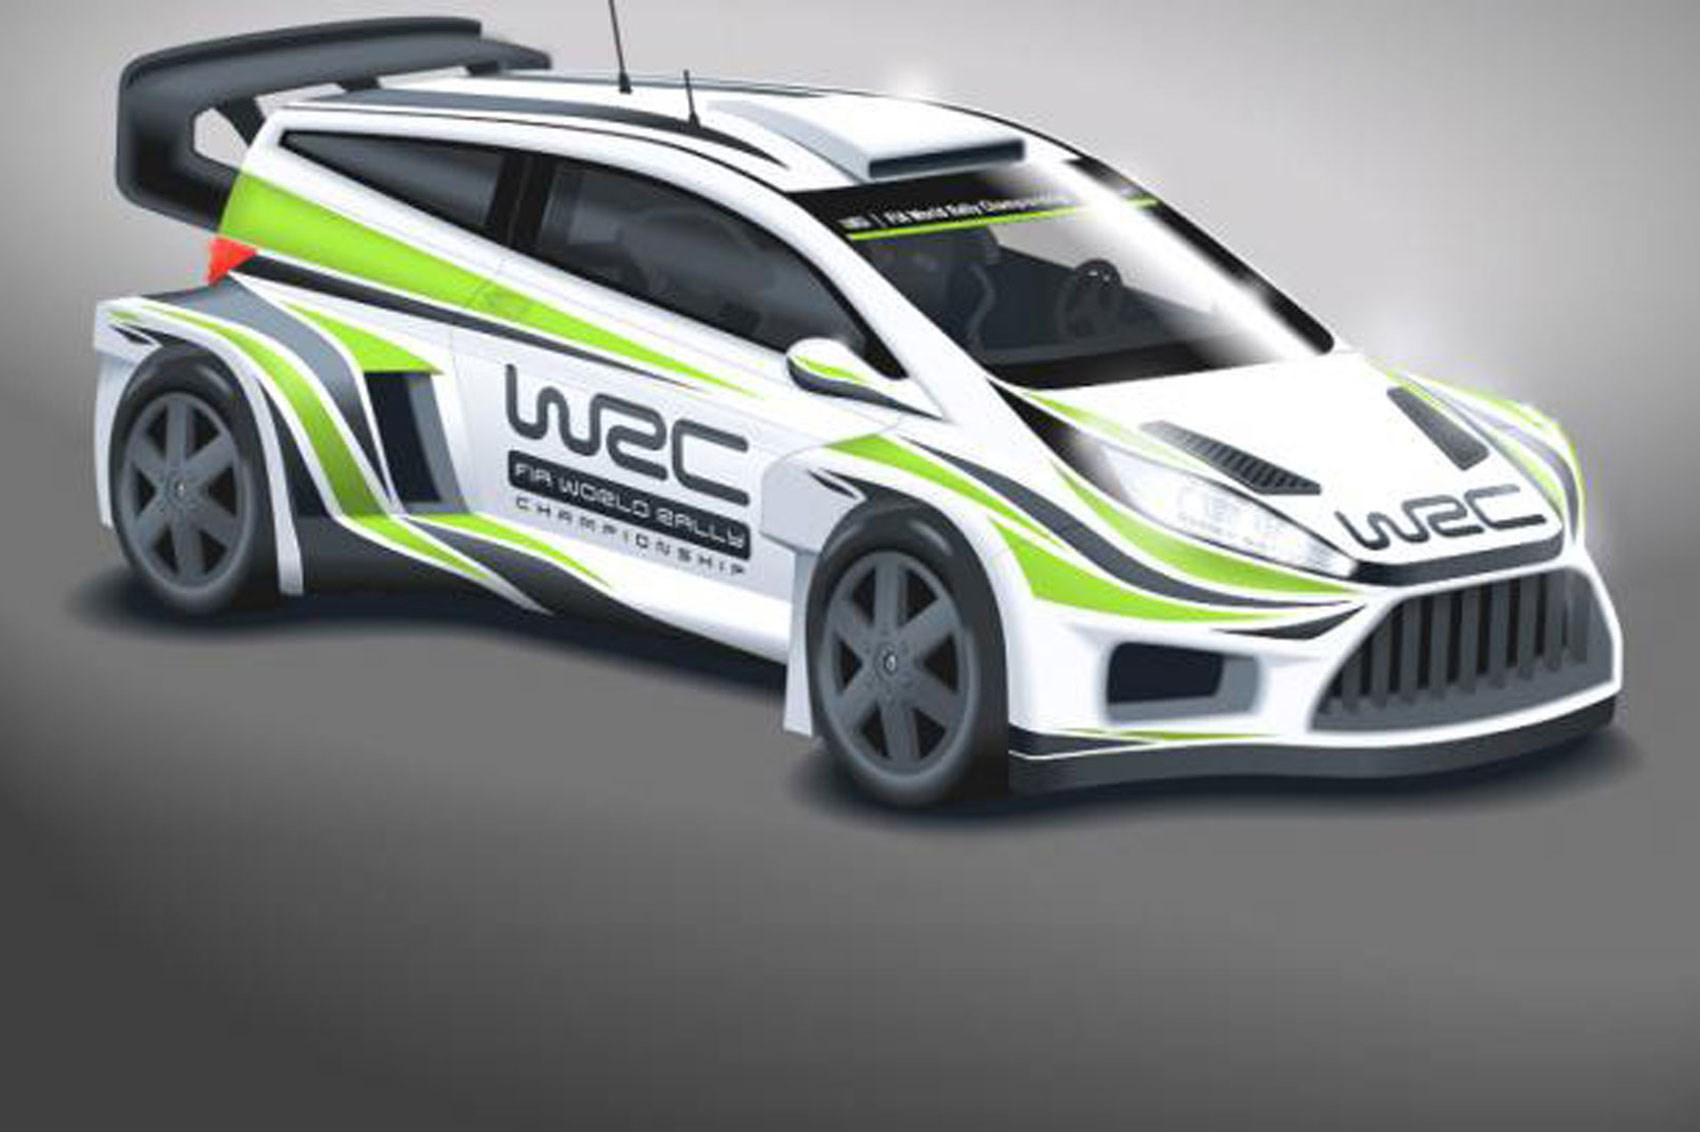 Ultrablogus  Ravishing Wild New Look For Wrc Cars In  By Car Magazine With Glamorous Wrc Cars Will Get Wider Bodies Bigger Wings And More Power For  With Attractive Audi A S Line Interior Also Mercedes Sl Interior In Addition Toyota Gt Interior And Kia Sorento Interior As Well As Toureg Interior Additionally Kia Sportage Interior From Carmagazinecouk With Ultrablogus  Glamorous Wild New Look For Wrc Cars In  By Car Magazine With Attractive Wrc Cars Will Get Wider Bodies Bigger Wings And More Power For  And Ravishing Audi A S Line Interior Also Mercedes Sl Interior In Addition Toyota Gt Interior From Carmagazinecouk